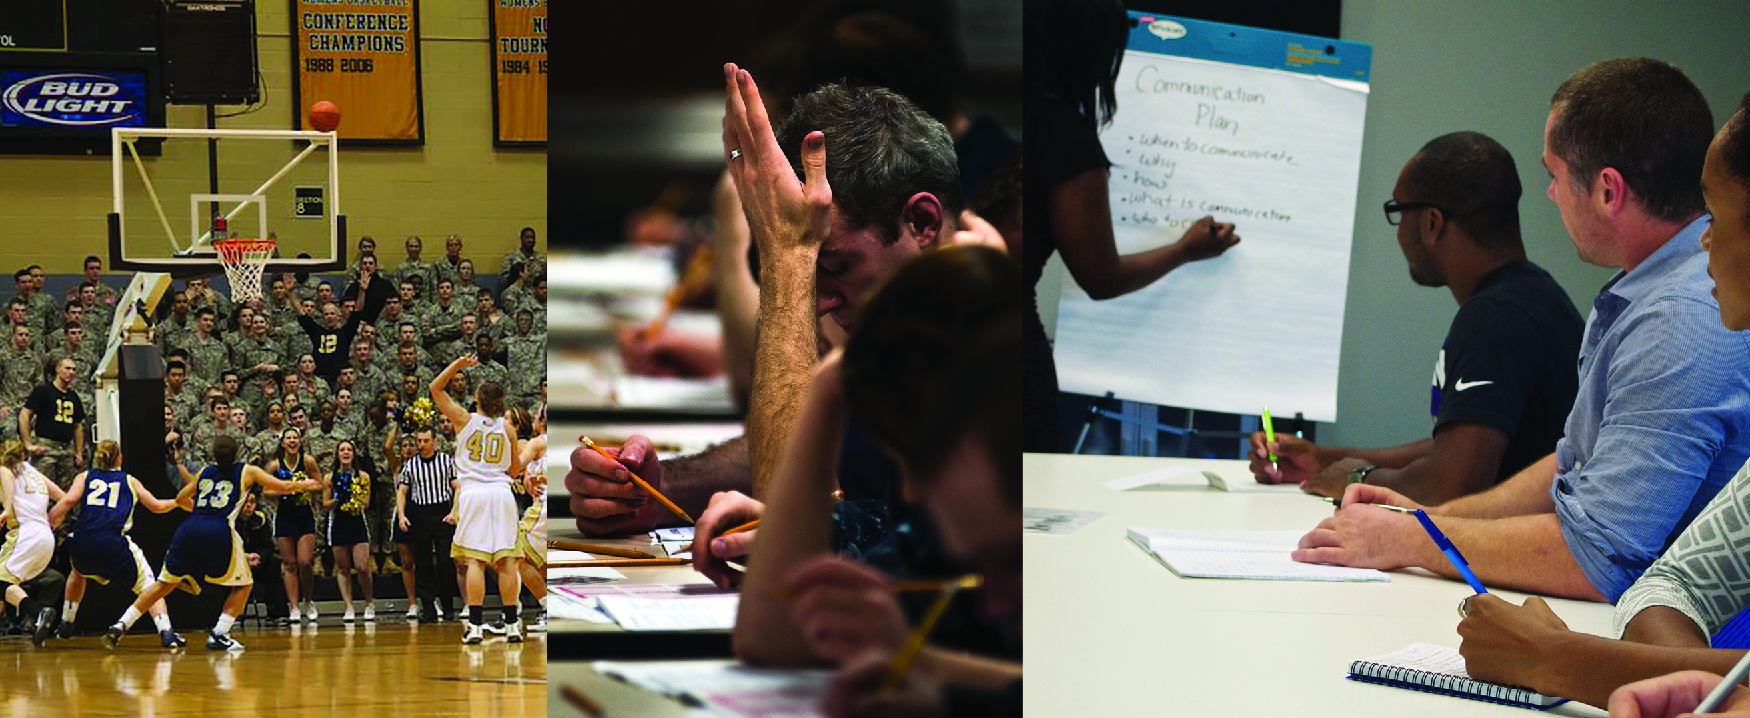 Three photographs show people engaged in activities. From left to right, a basketball game, taking a test, listening to a presentation.